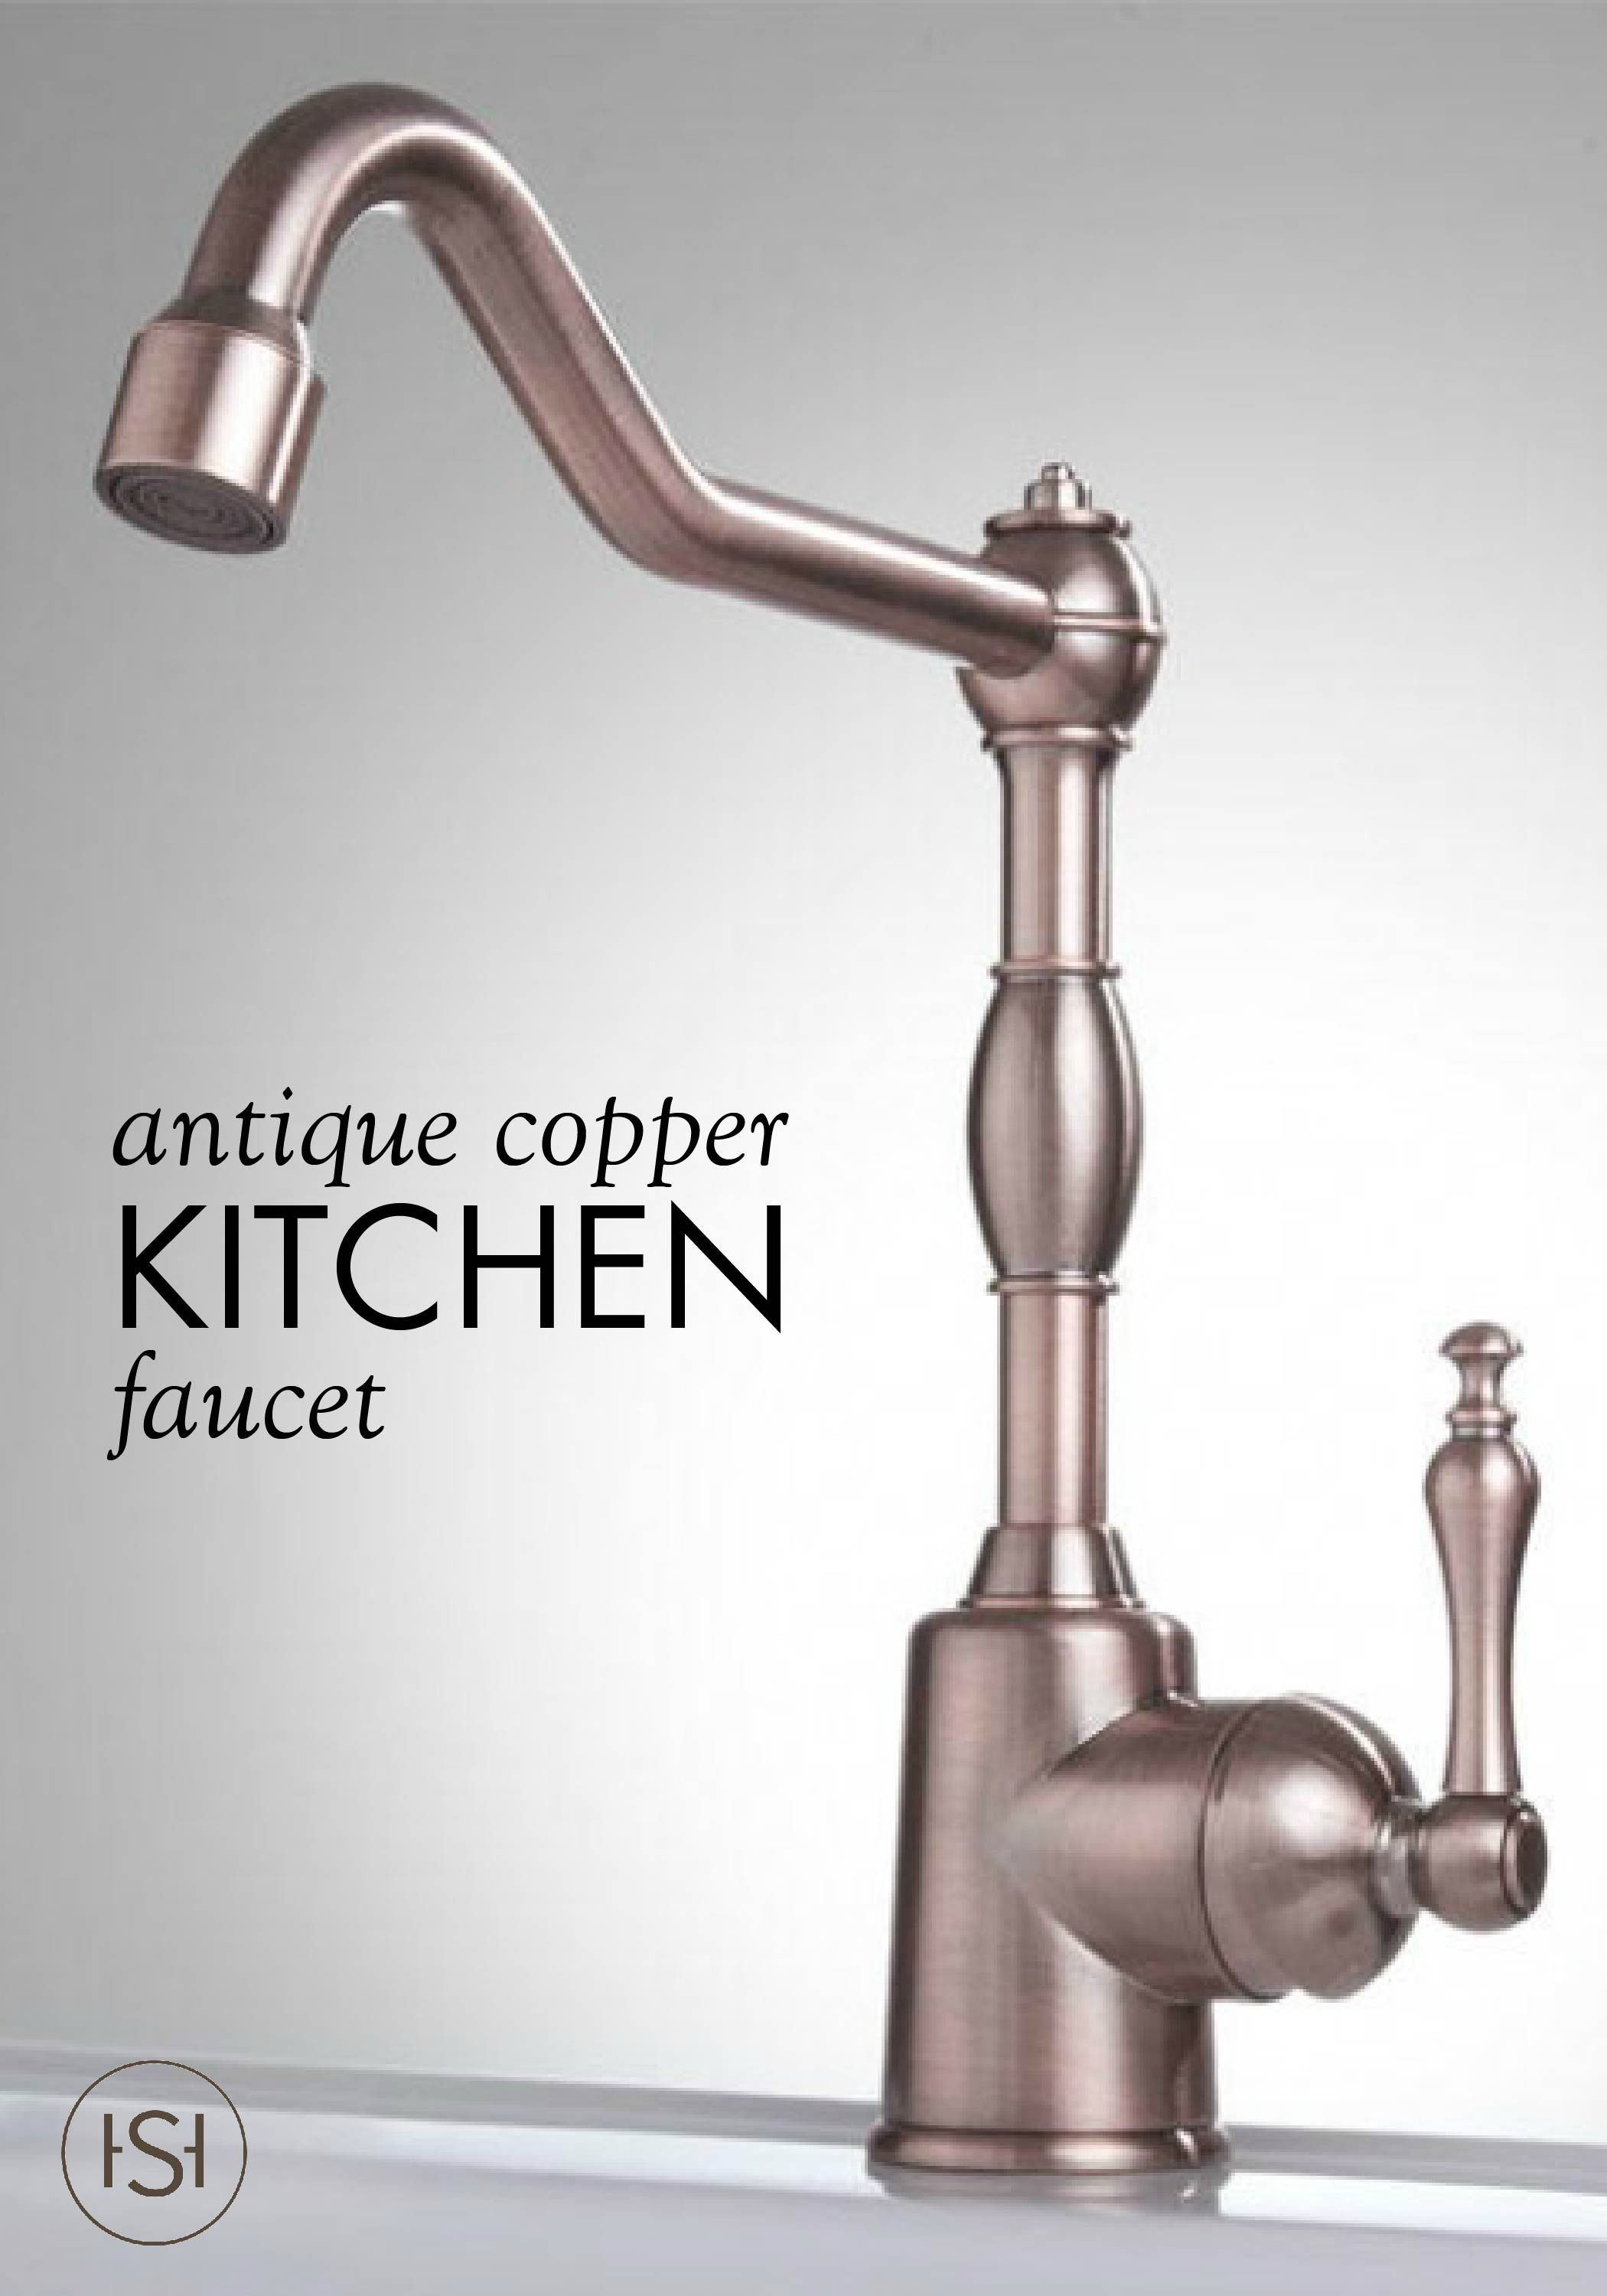 vintage style kitchen faucets countertop material ideal for a bar or sink this antique copper